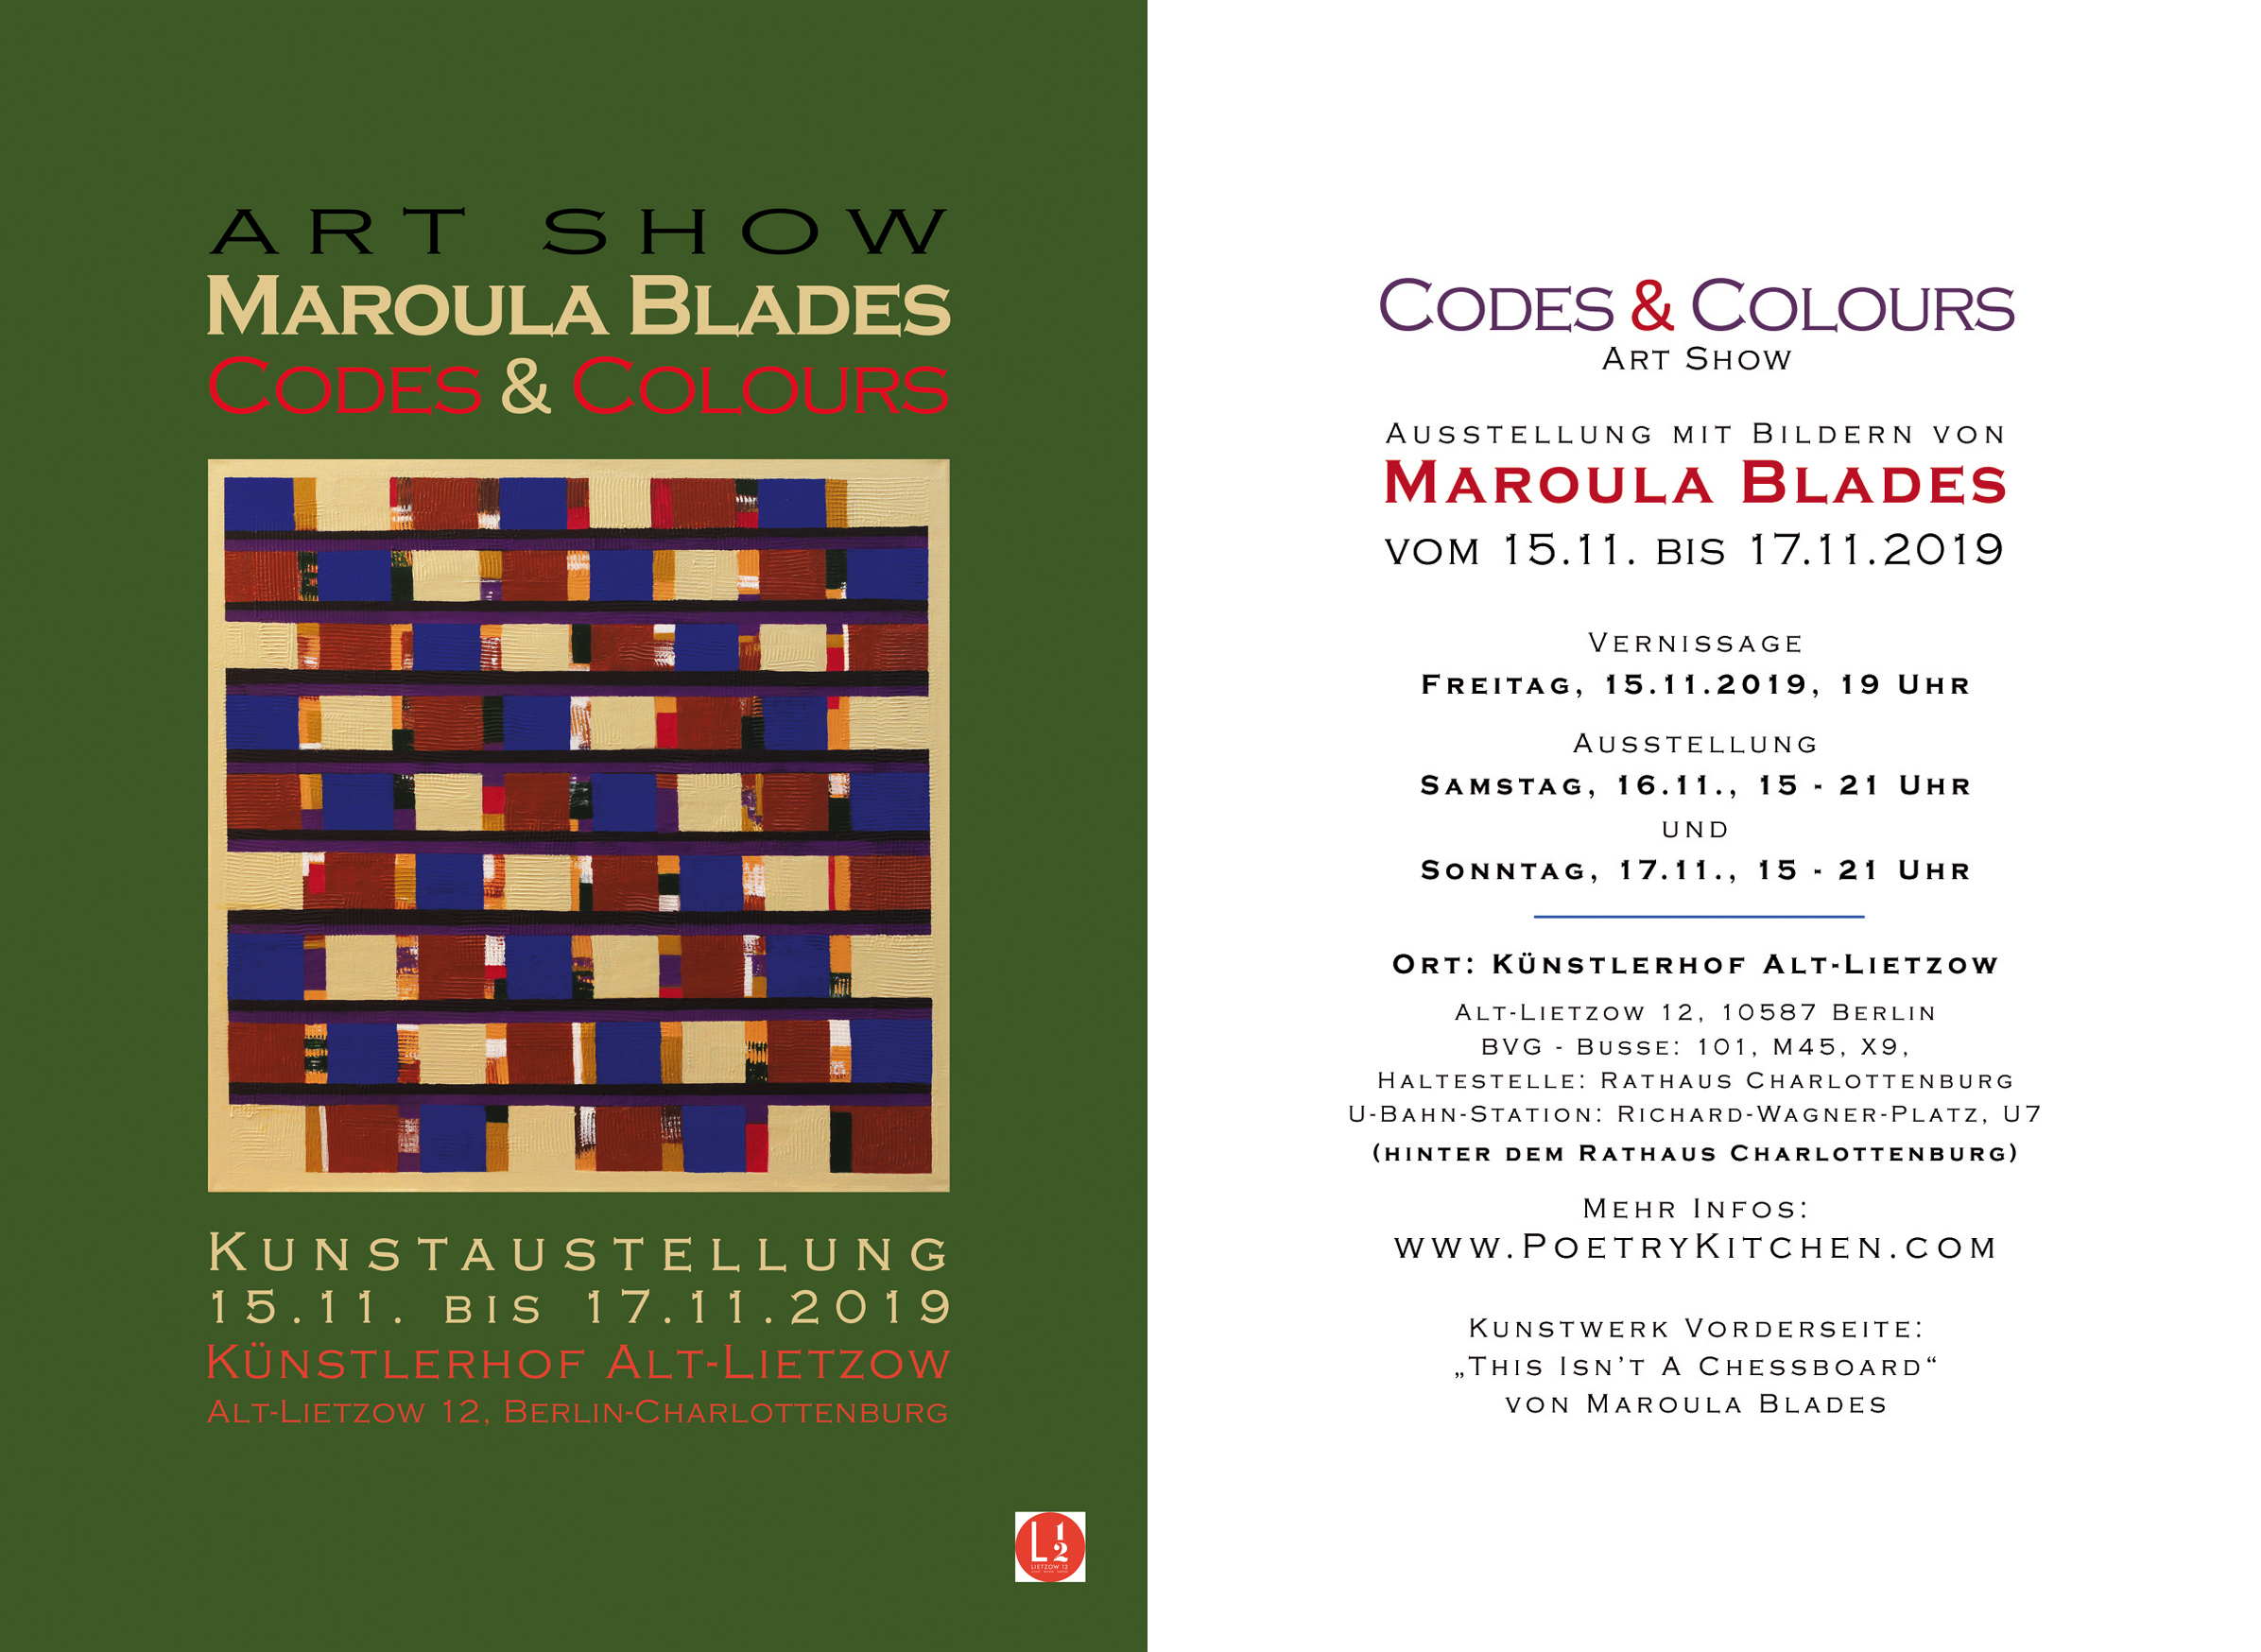 email flyer - Maroula Blades - CODES & COLOURS